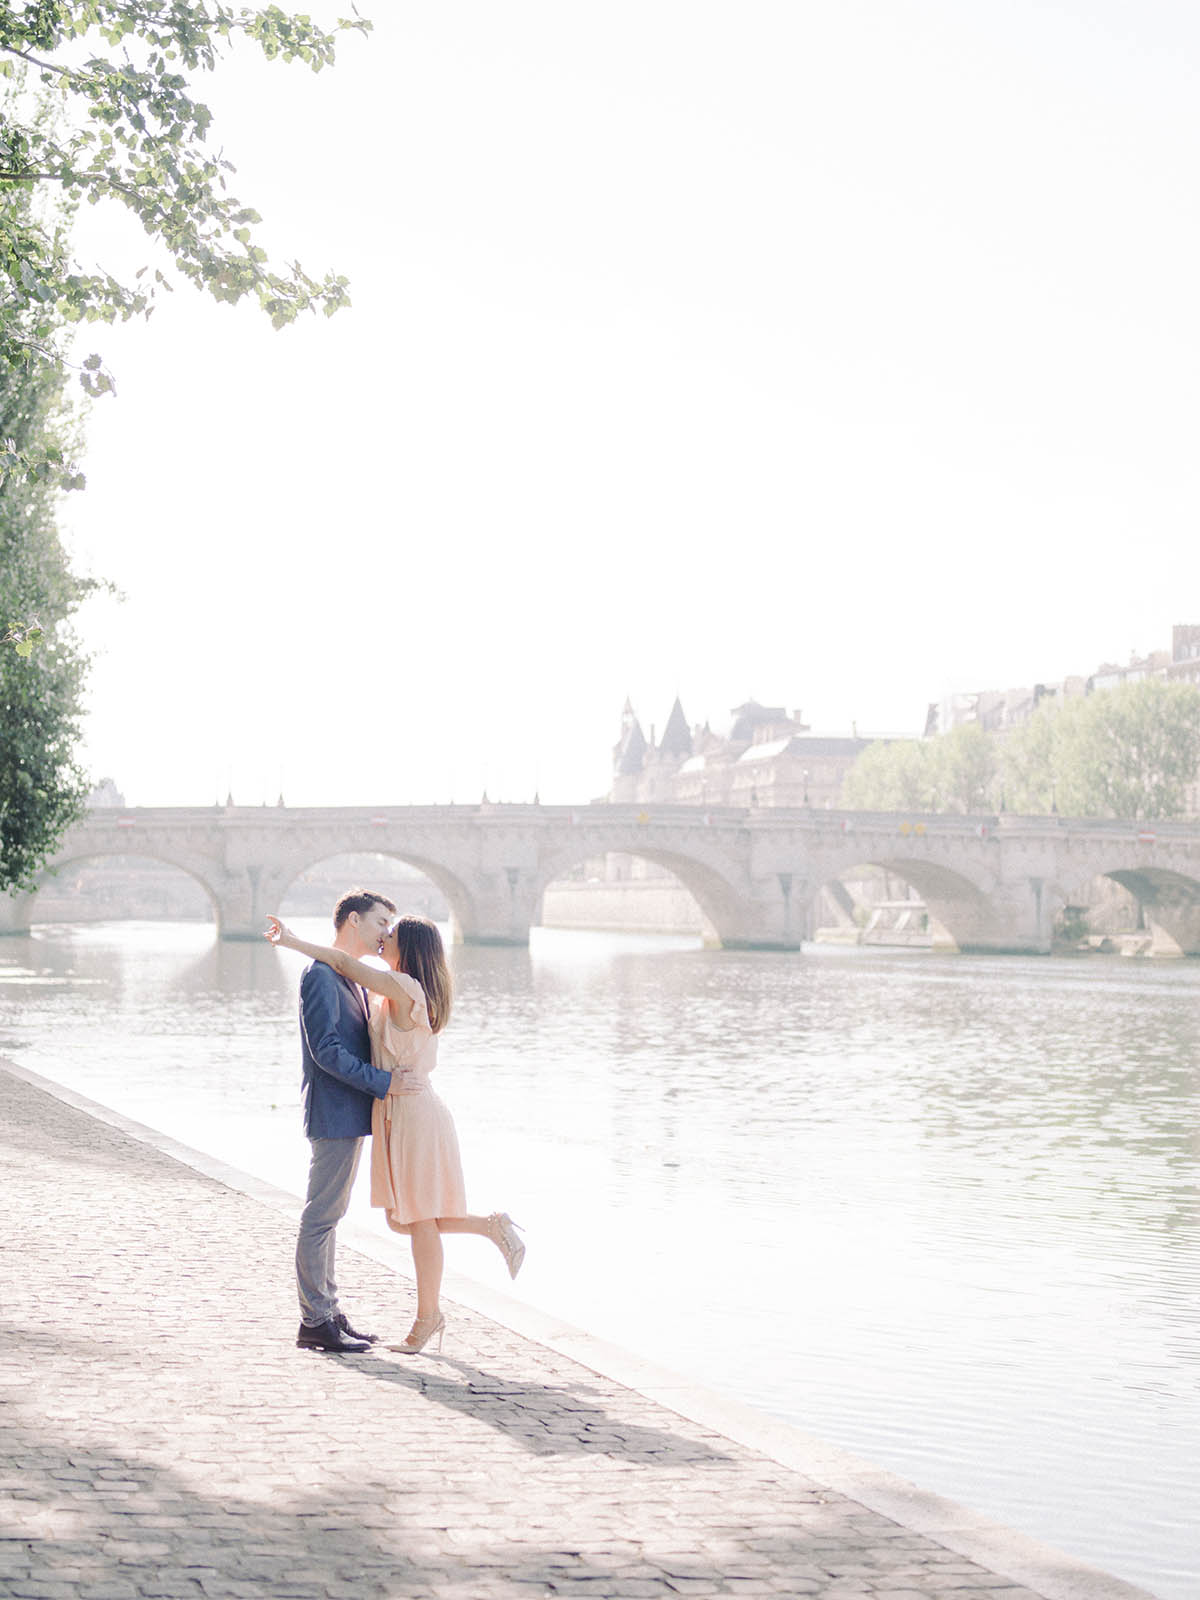 the bride and groom take themselves in the arms on the quays of Seine of Paris